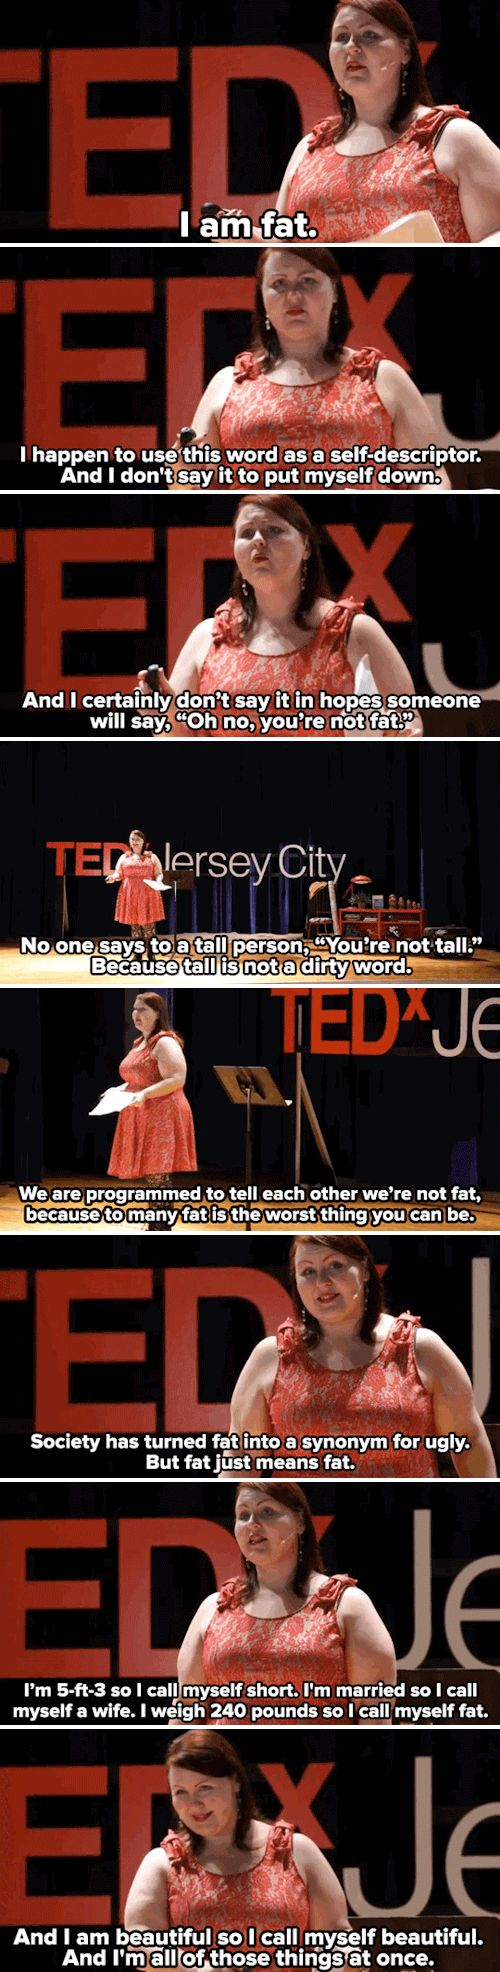 Lillian is a burlesque dancer and her TEDx talk nails the key to positive body image